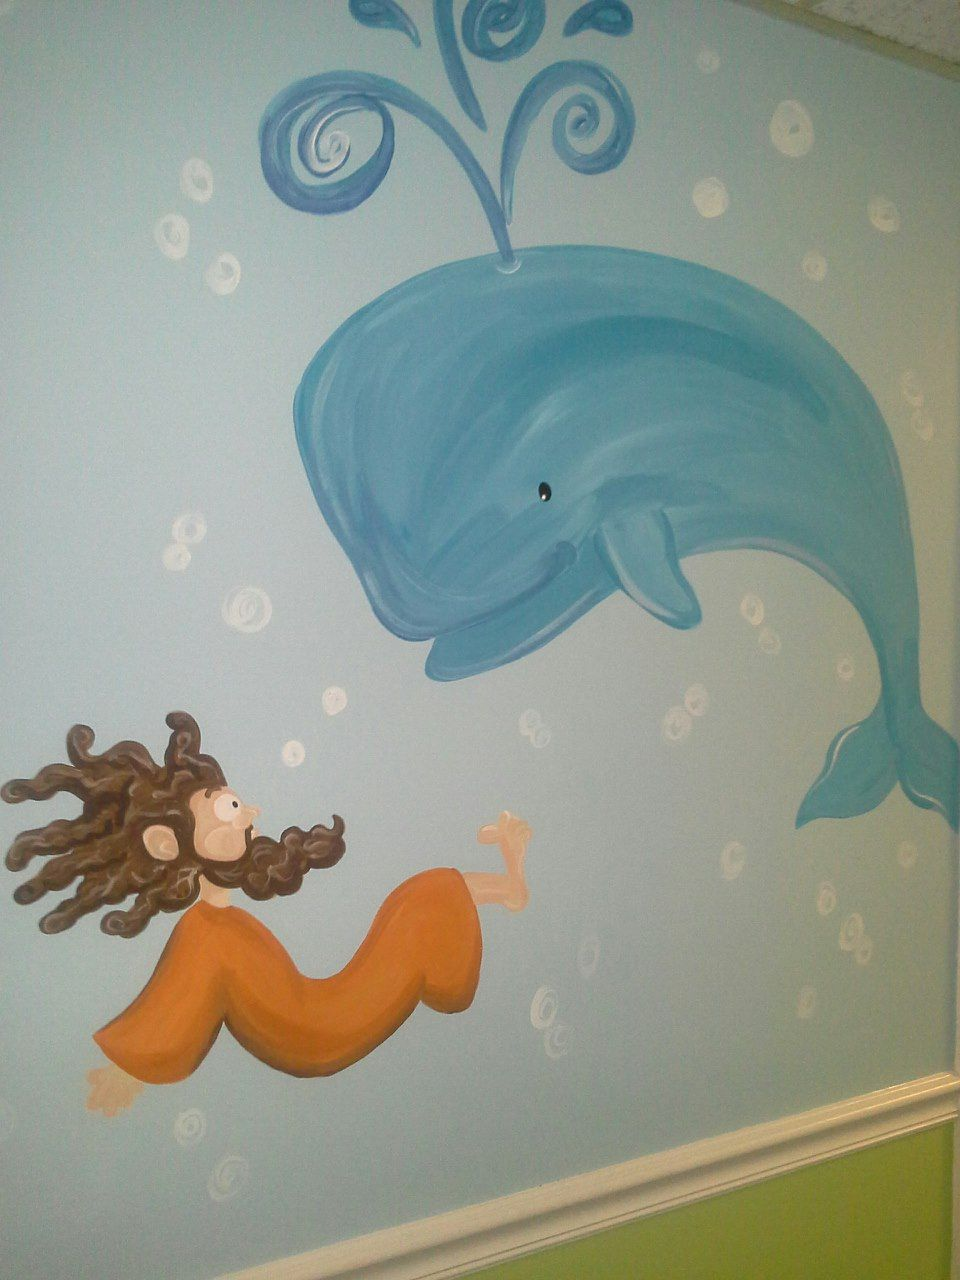 jonah and the whale wall mural kidproof and aproved pinterest jonah and the whale wall mural